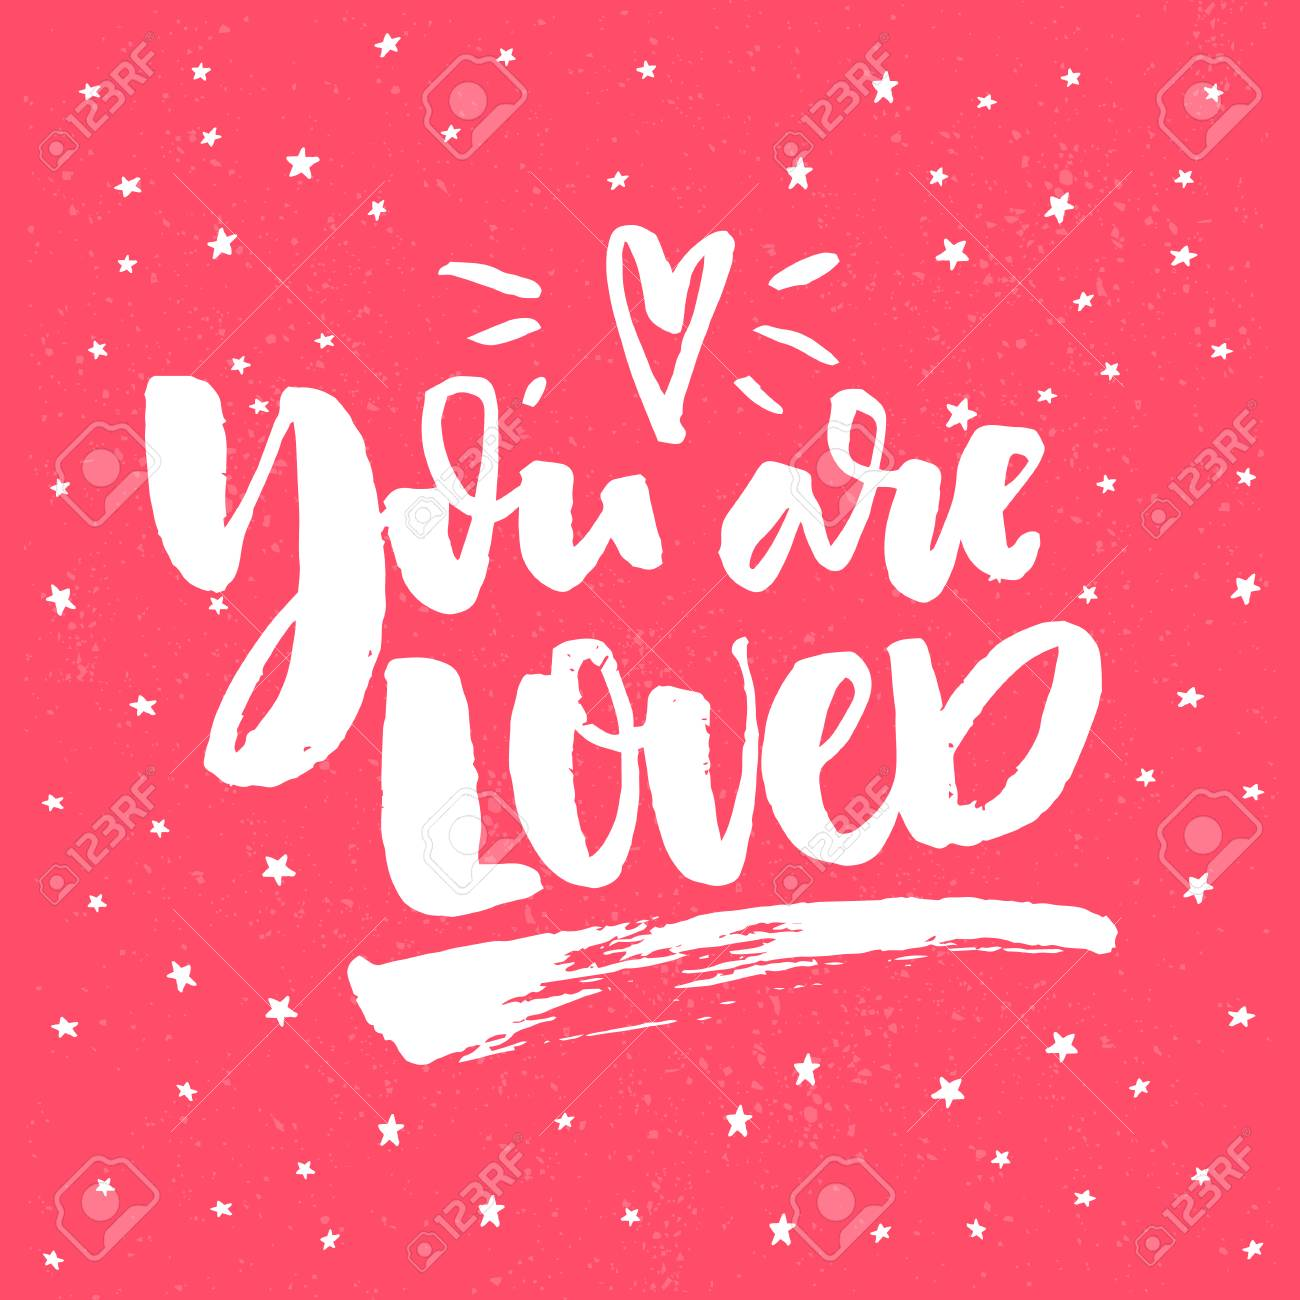 romantic quote for valentines day cards greetings t shits and wall art posters vector white on pink background with hand drawn stars